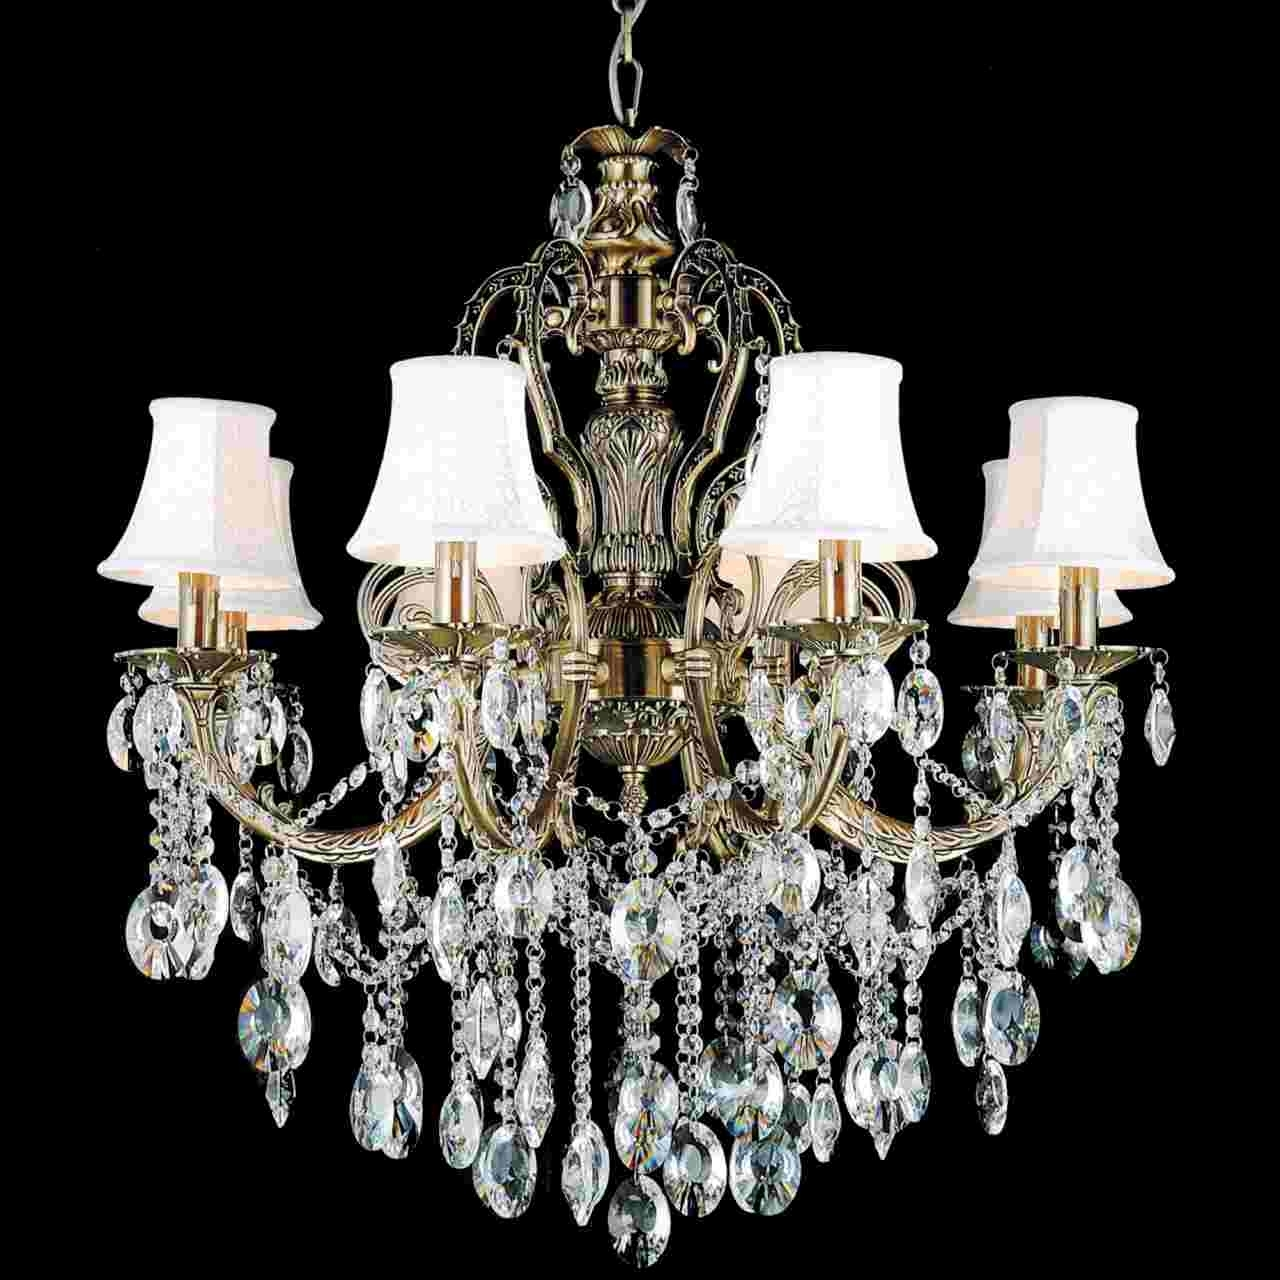 Best And Newest Chandelier Lampshades Regarding Brizzo Lighting Stores (View 12 of 15)